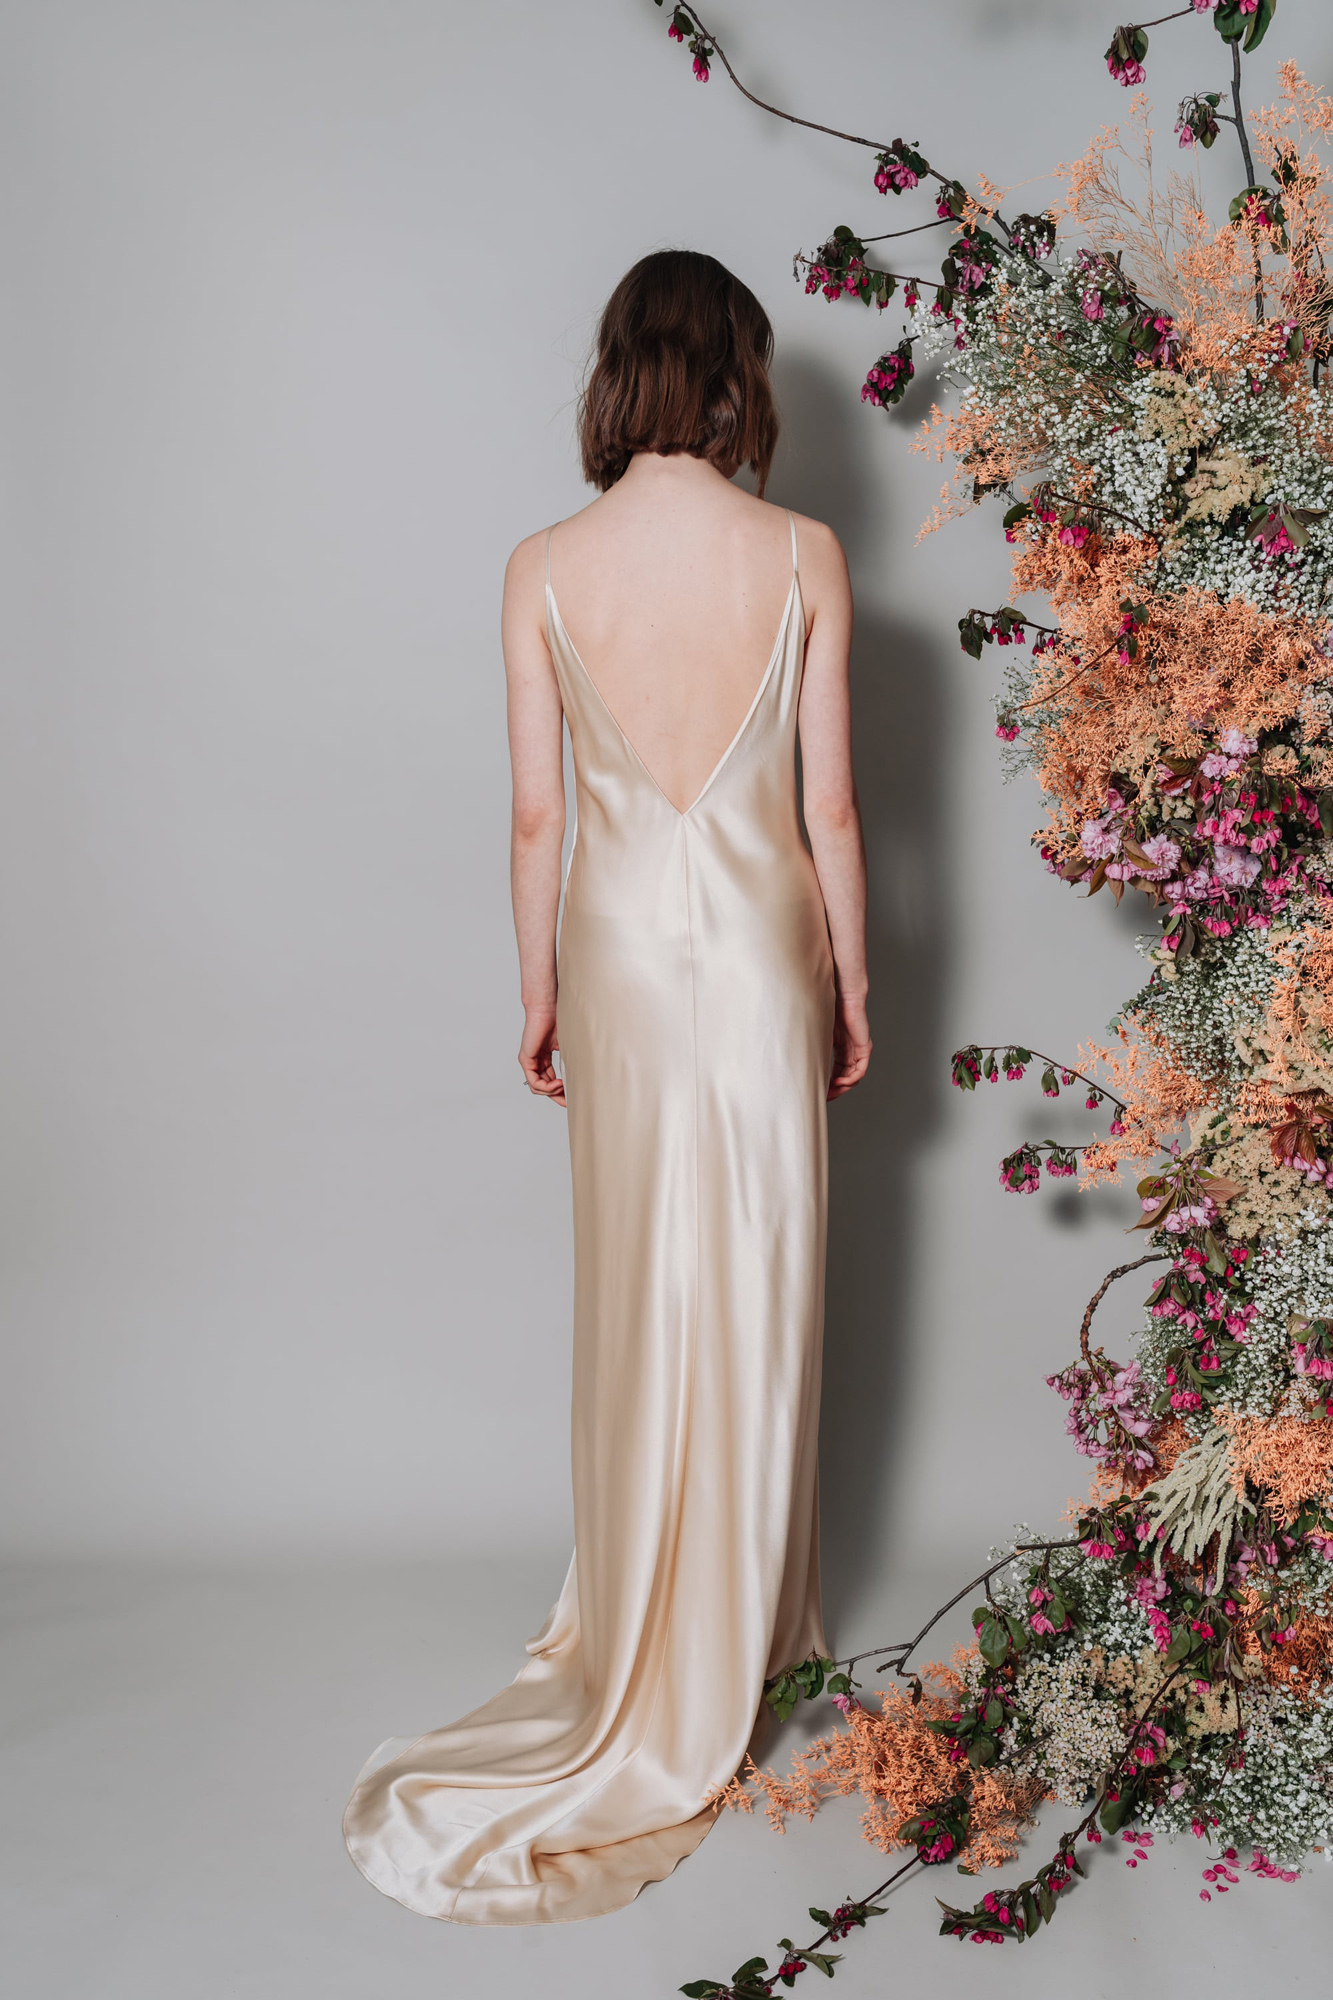 Kate-Beaumont-Sheffield-Thistle-Bridal-Separates-Two-Piece-Lace-Silk-Wedding-Gown-19.jpg